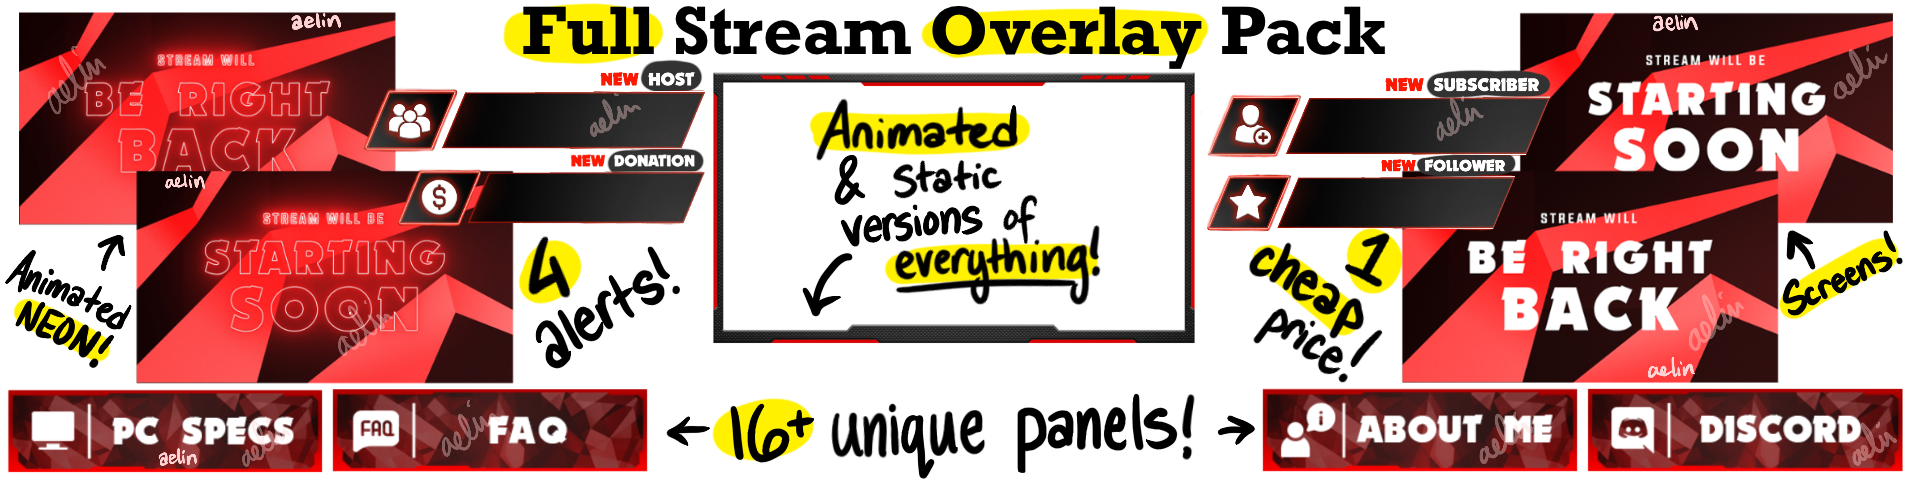 Twitch streamer overlay pack